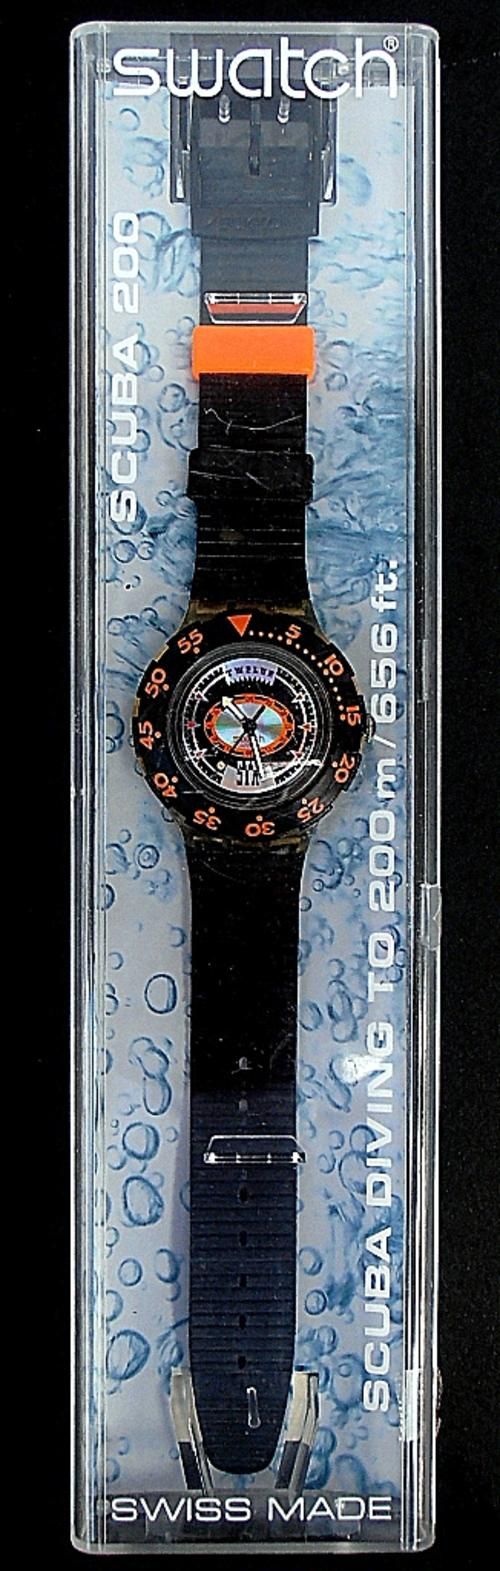 Sports outdoors watches vintage 1993 swatch scuba - Swatch dive watch ...